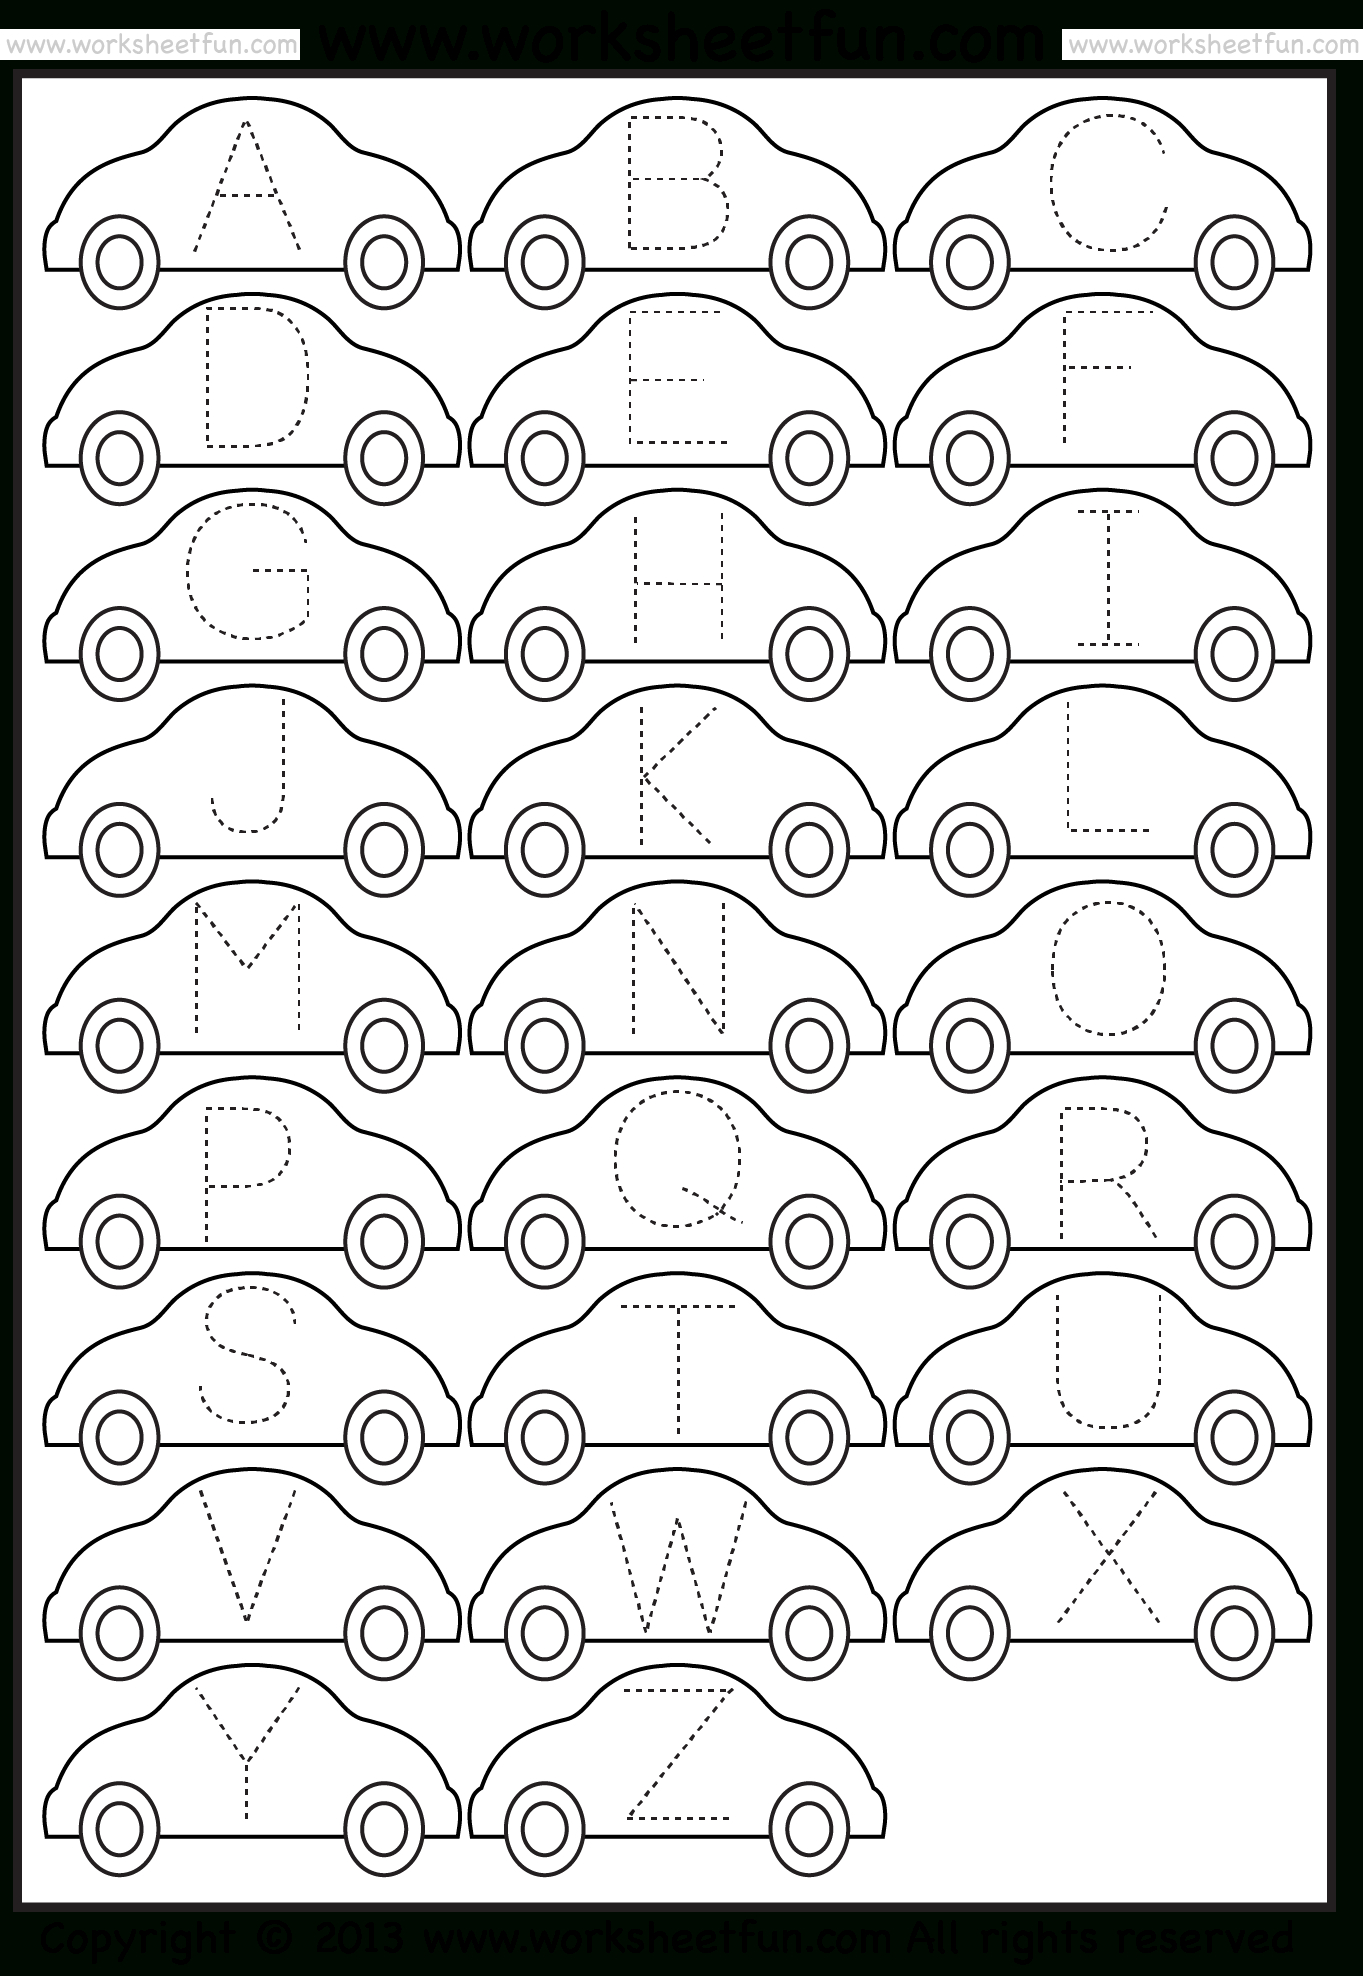 Tracing – Letter Tracing / Free Printable Worksheets – Worksheetfun | Printable Tracing Worksheets